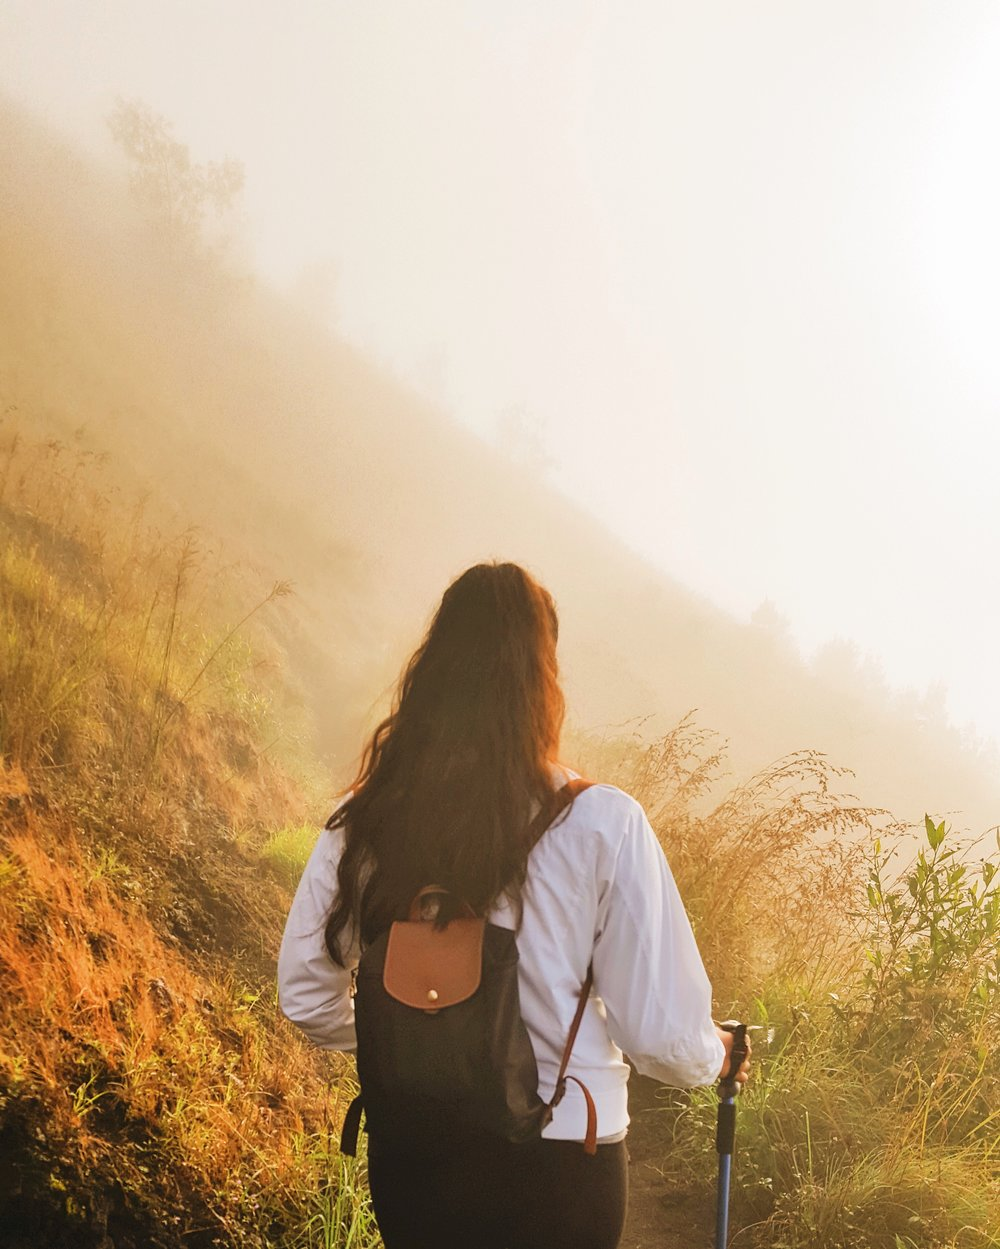 Mount Batur Sunrise Hike, Bali - illumelation.com